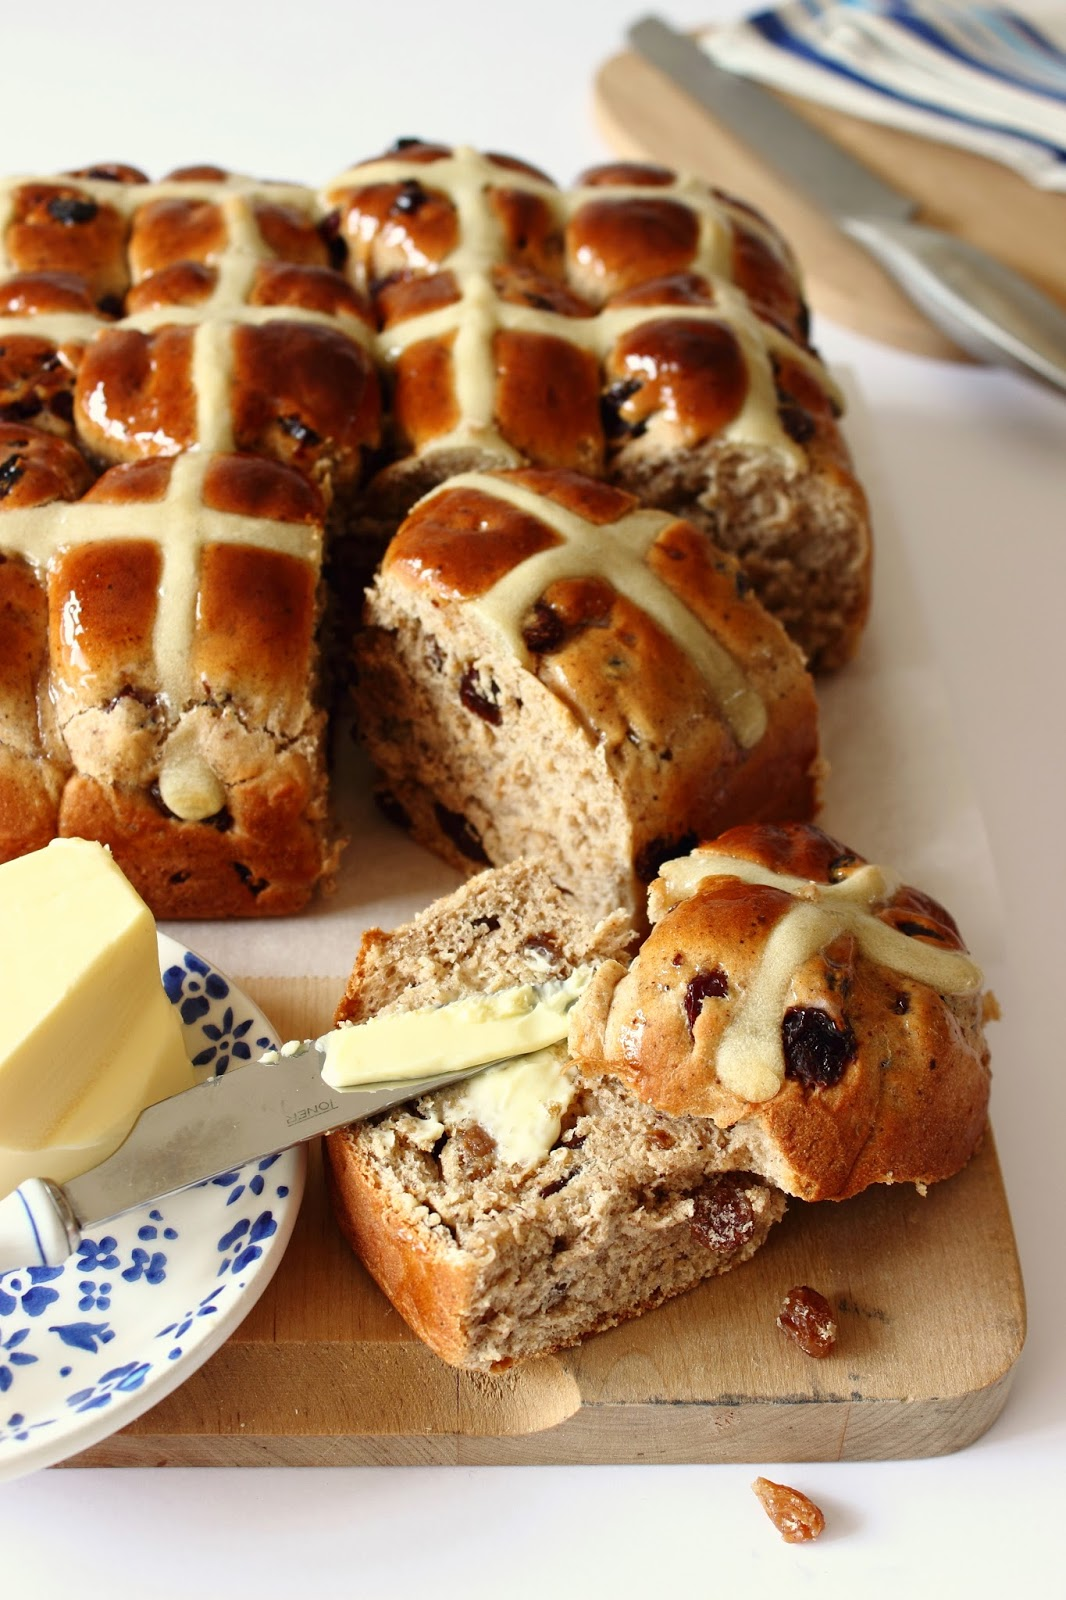 Hot Cross Buns (zoete broodjes)